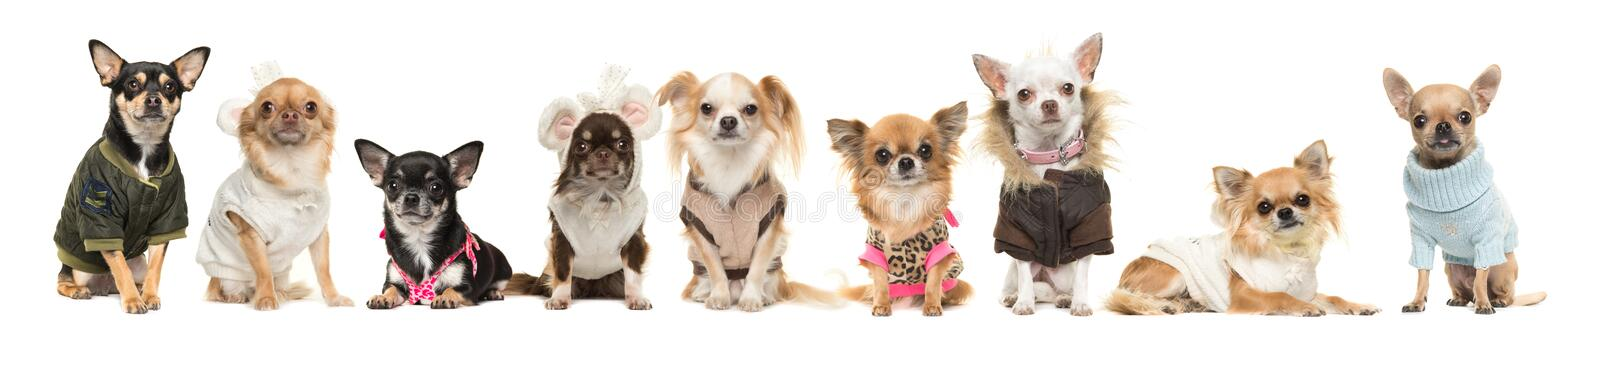 Group of nine chihuahua dogs wearing clothes isolated on a white stock images